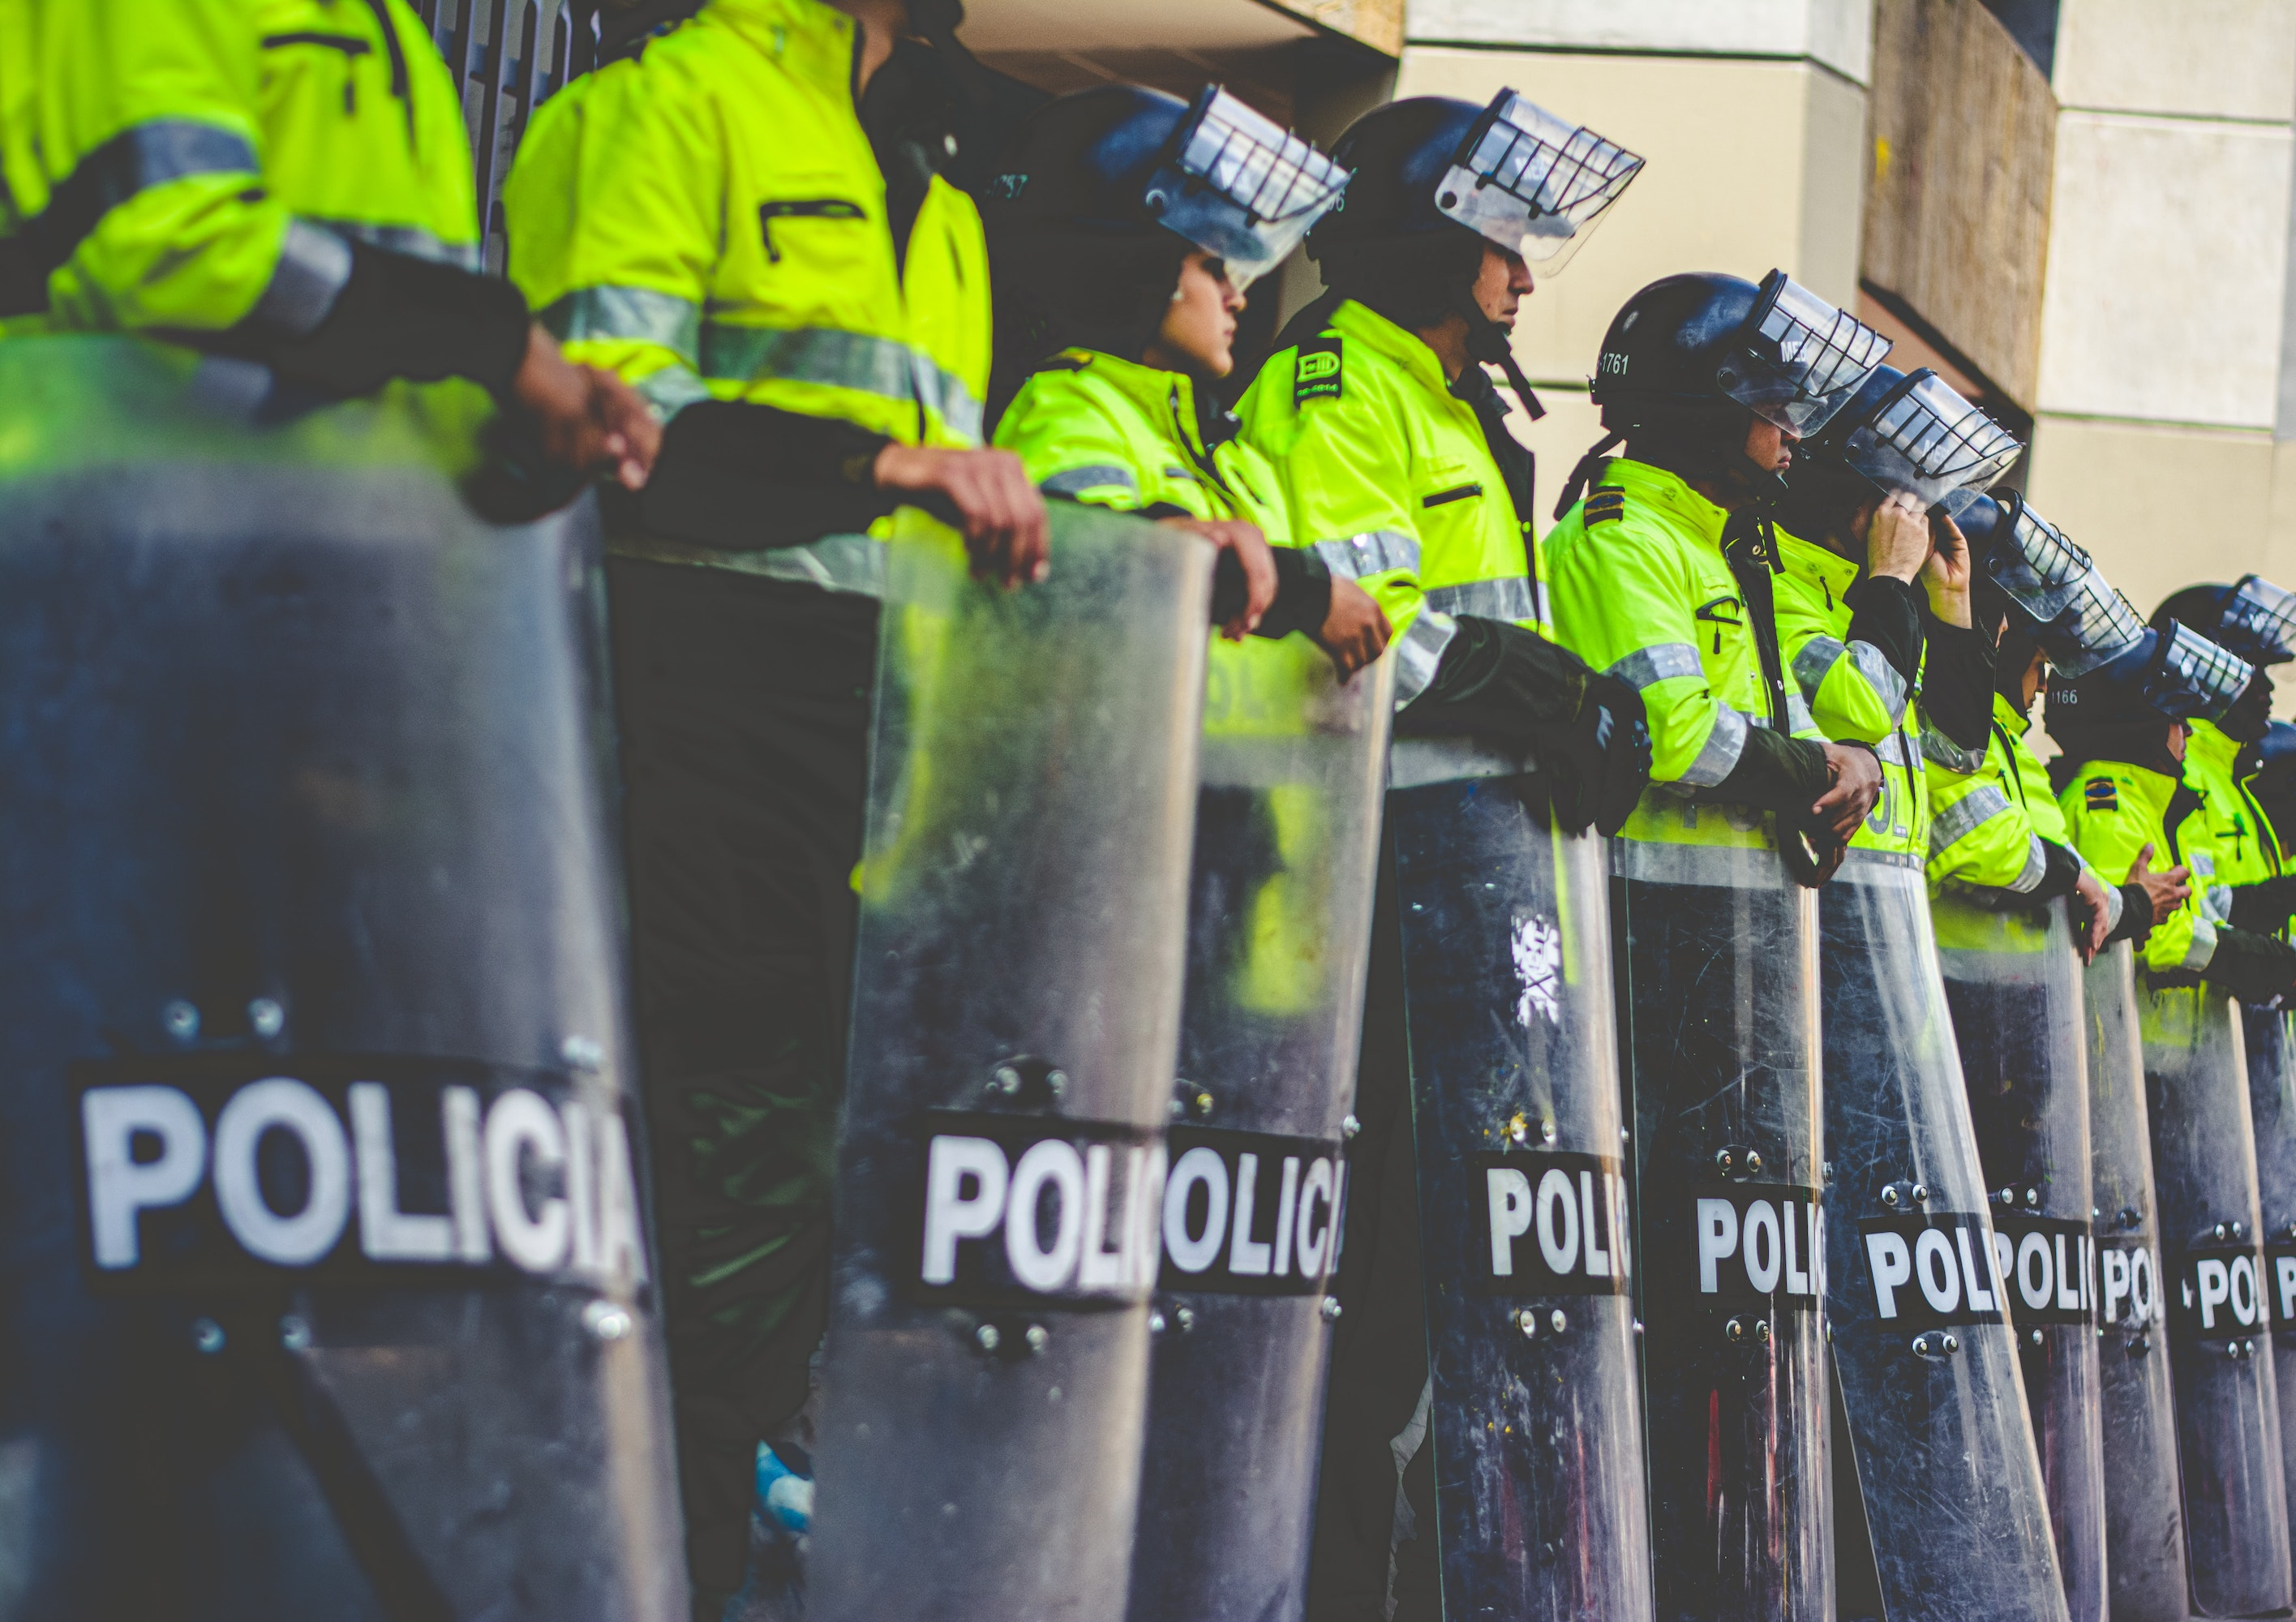 AI in policing